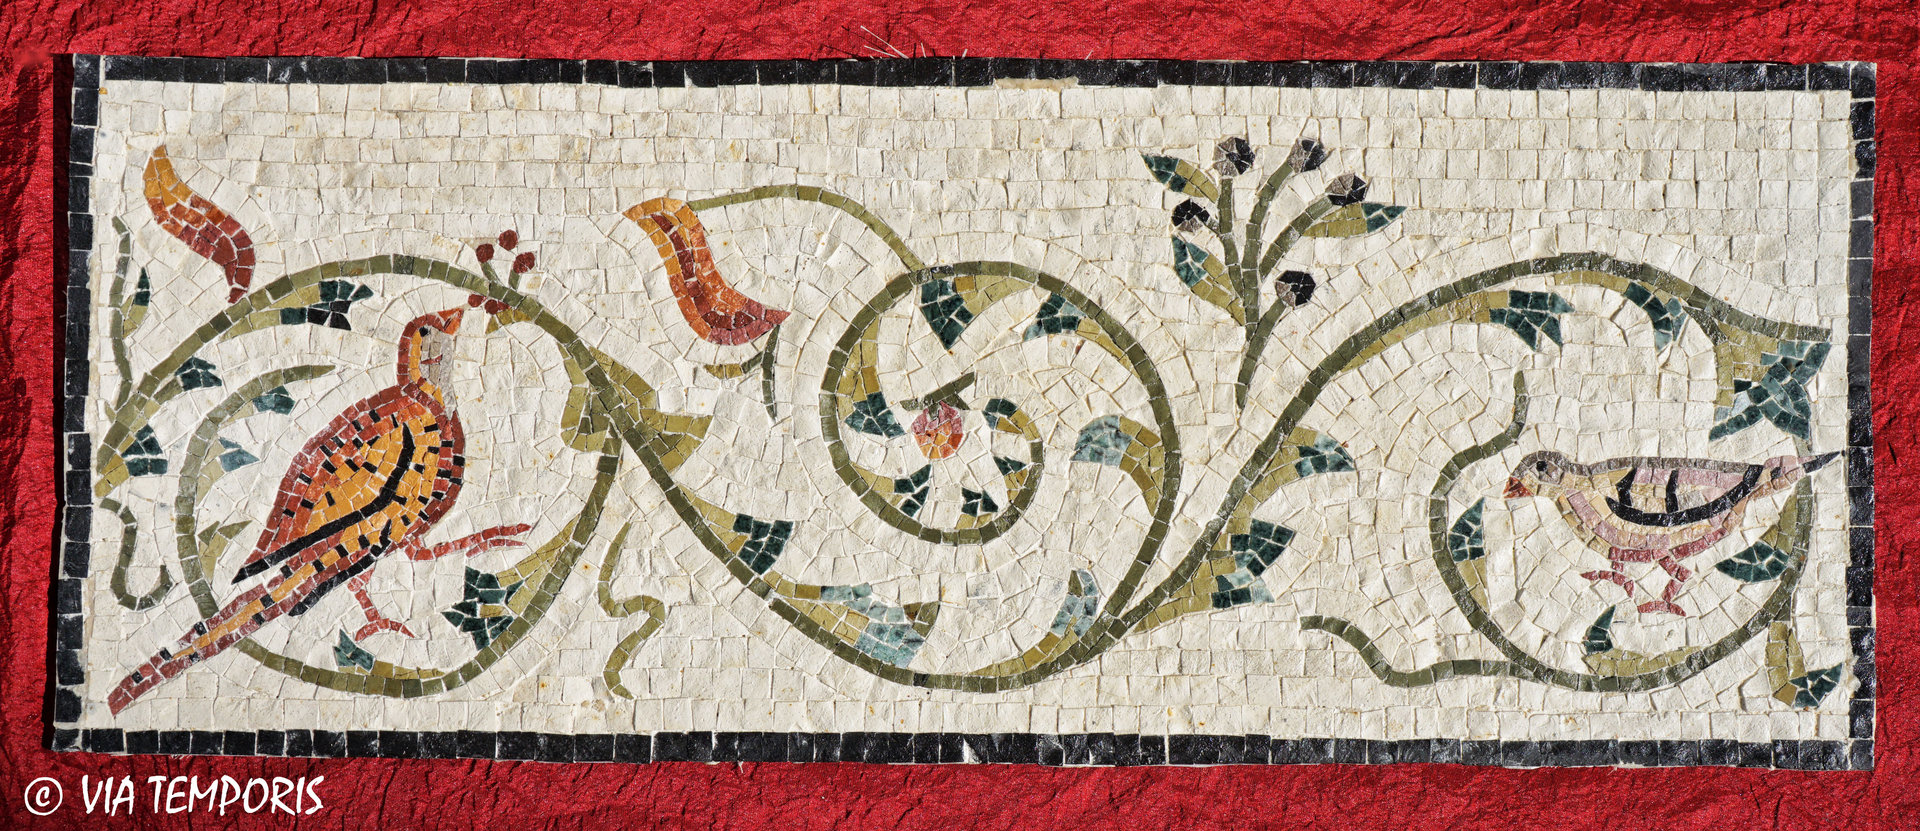 ROMAN MOSAIC - FRIEZE WITH BIRDS